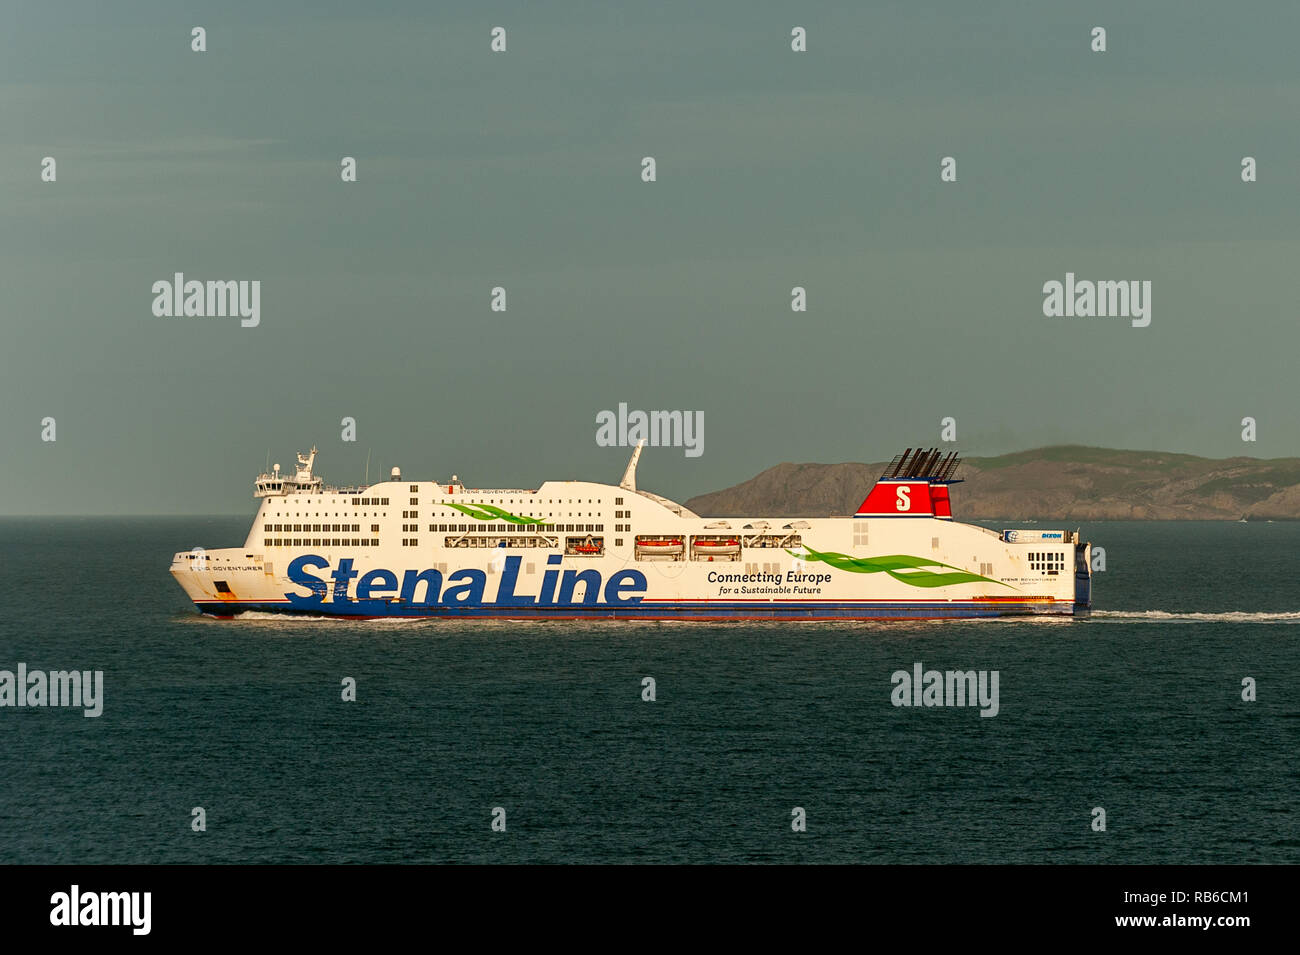 Stena Line ferry 'Stena Adventurer' departs Holyhead Ferry Port heading for Dublin, Ireland with copy space. - Stock Image